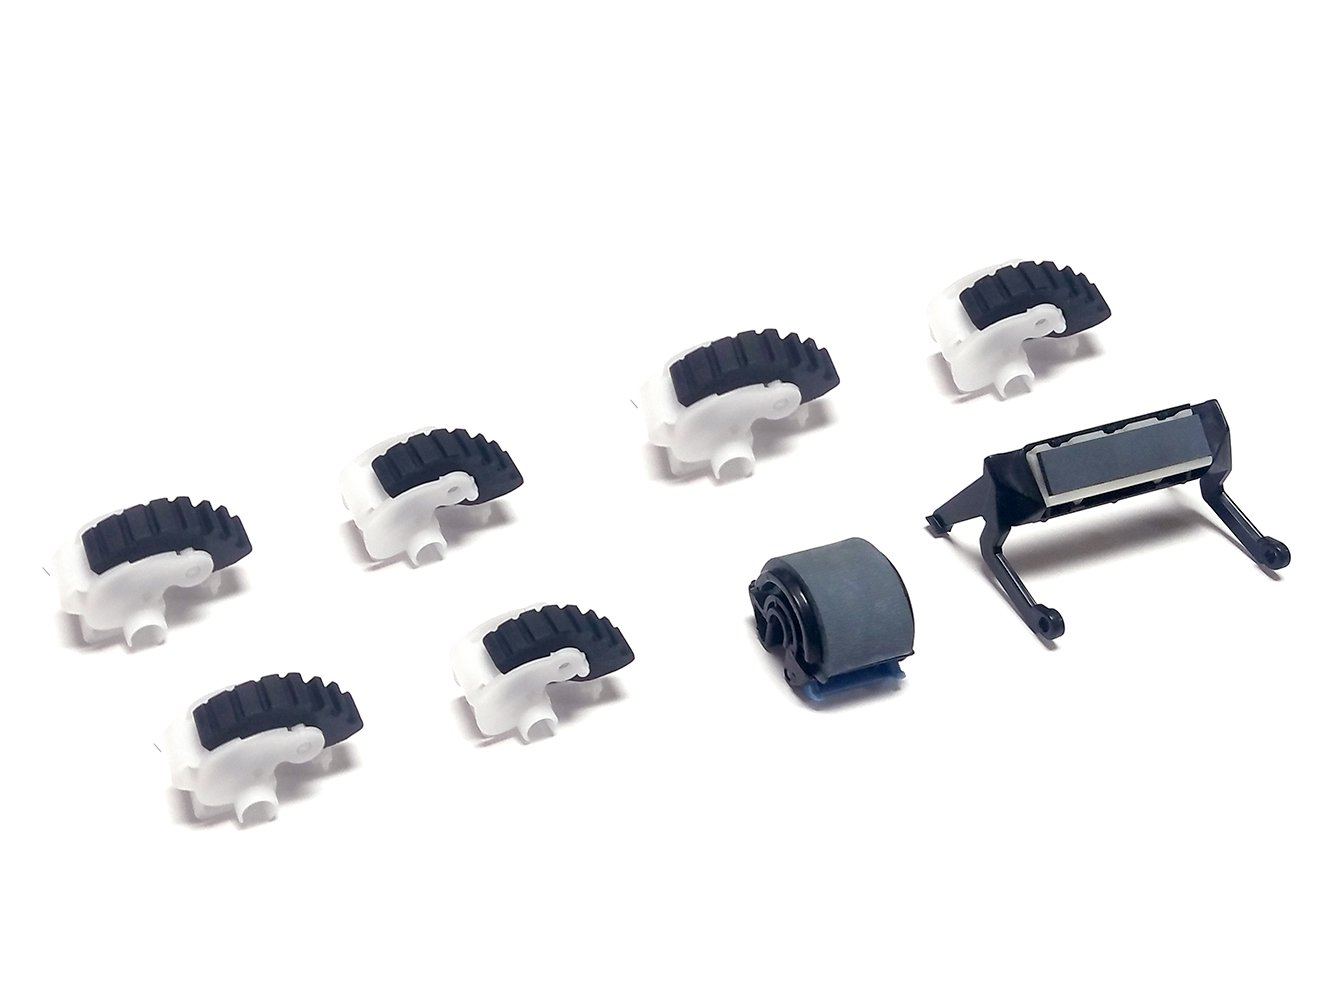 AltruPrint 4600-RK-DLX-AP Deluxe Roller Kit for HP Color LaserJet 4610/4650/4600 & Canon imageCLASS C2500 includes Rollers for Tray 1/2/3/4